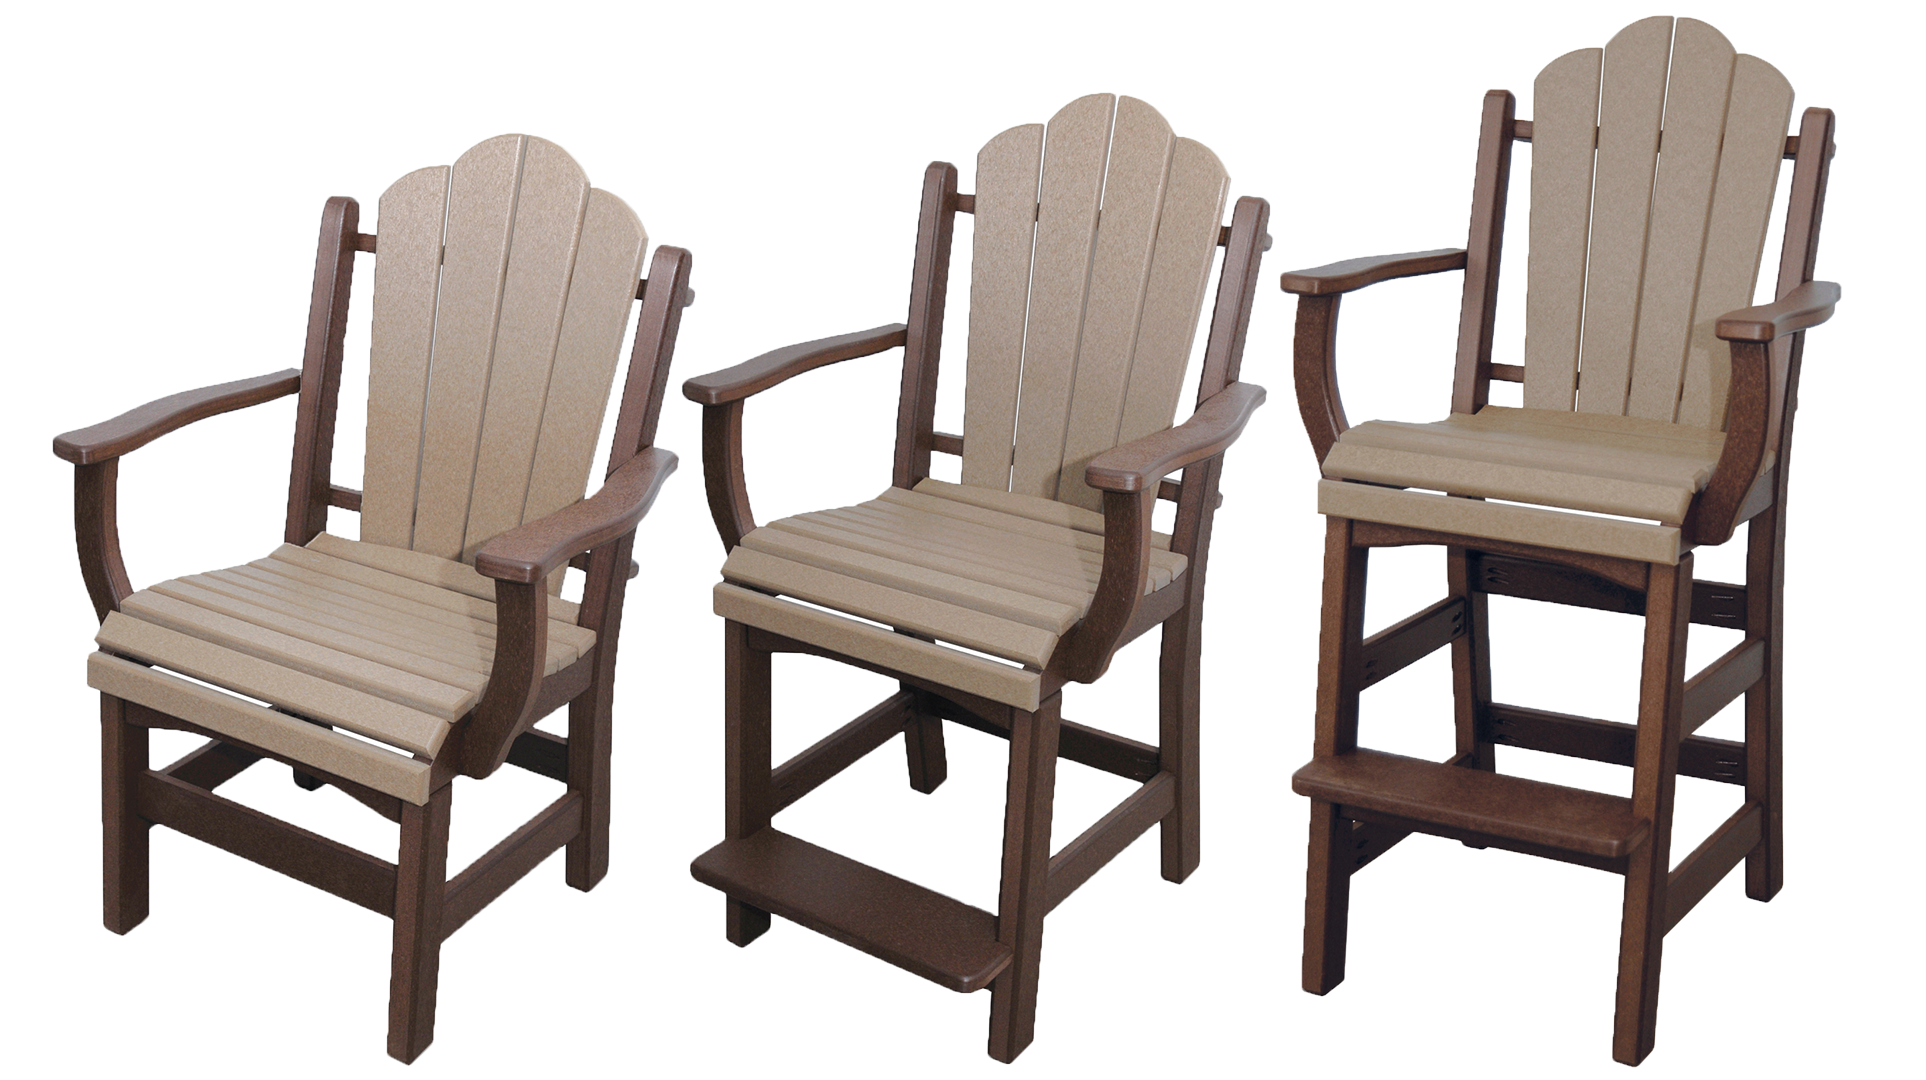 Daisy arm chair lancaster york pa for Outdoor furniture york pa